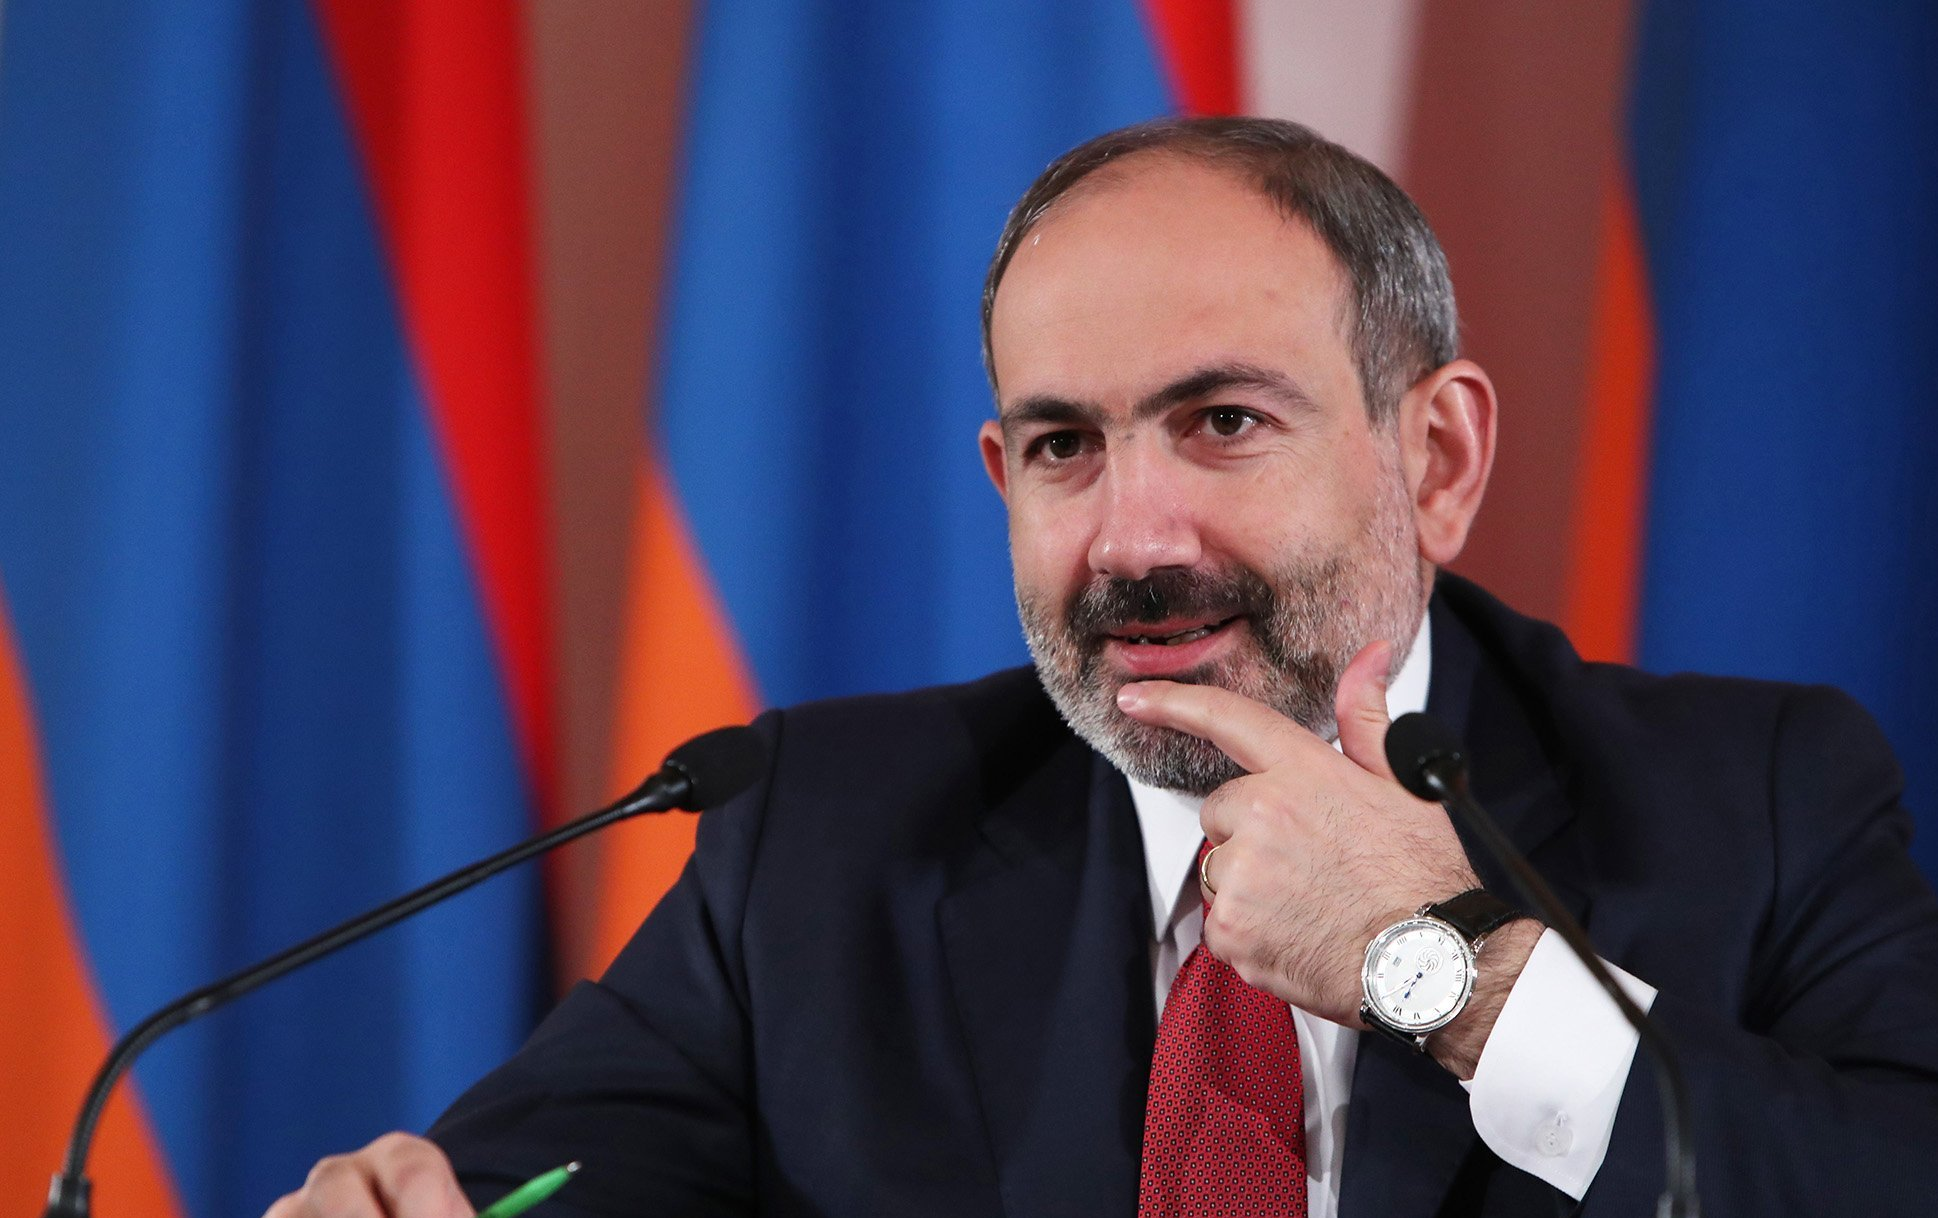 Aurora has become our Nobel Peace Prize. Nikol Pashinyan